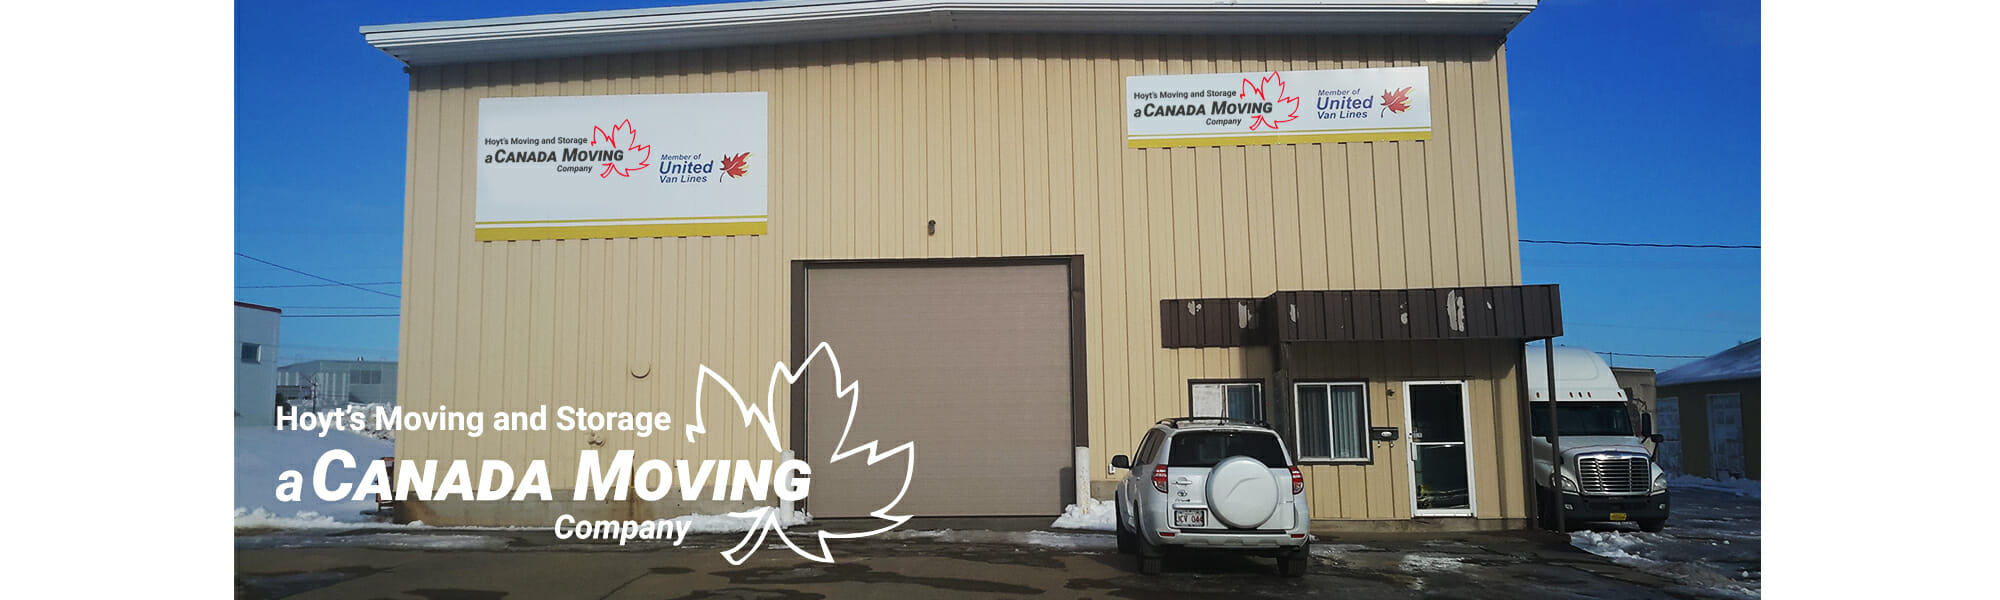 hoyt's moving and storage -canada-moving-miramichi